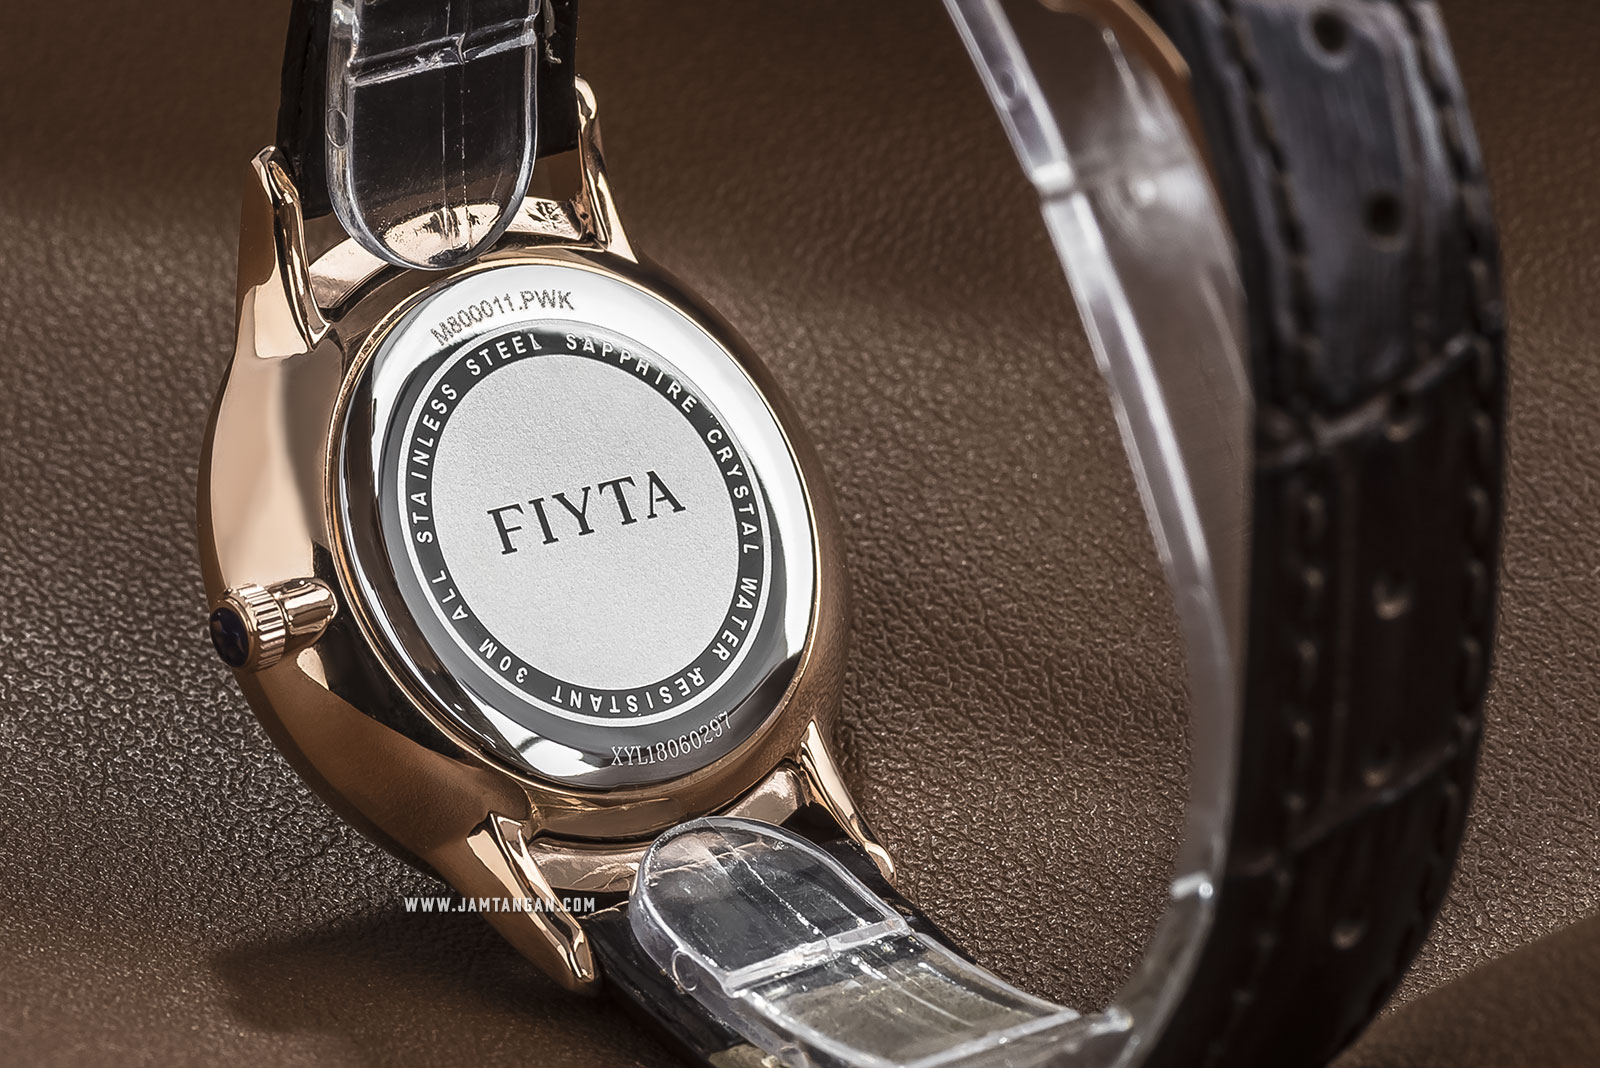 FIYTA M800011.PWK Joyart Ladies White Dial Brown Leather Strap Machtwatch